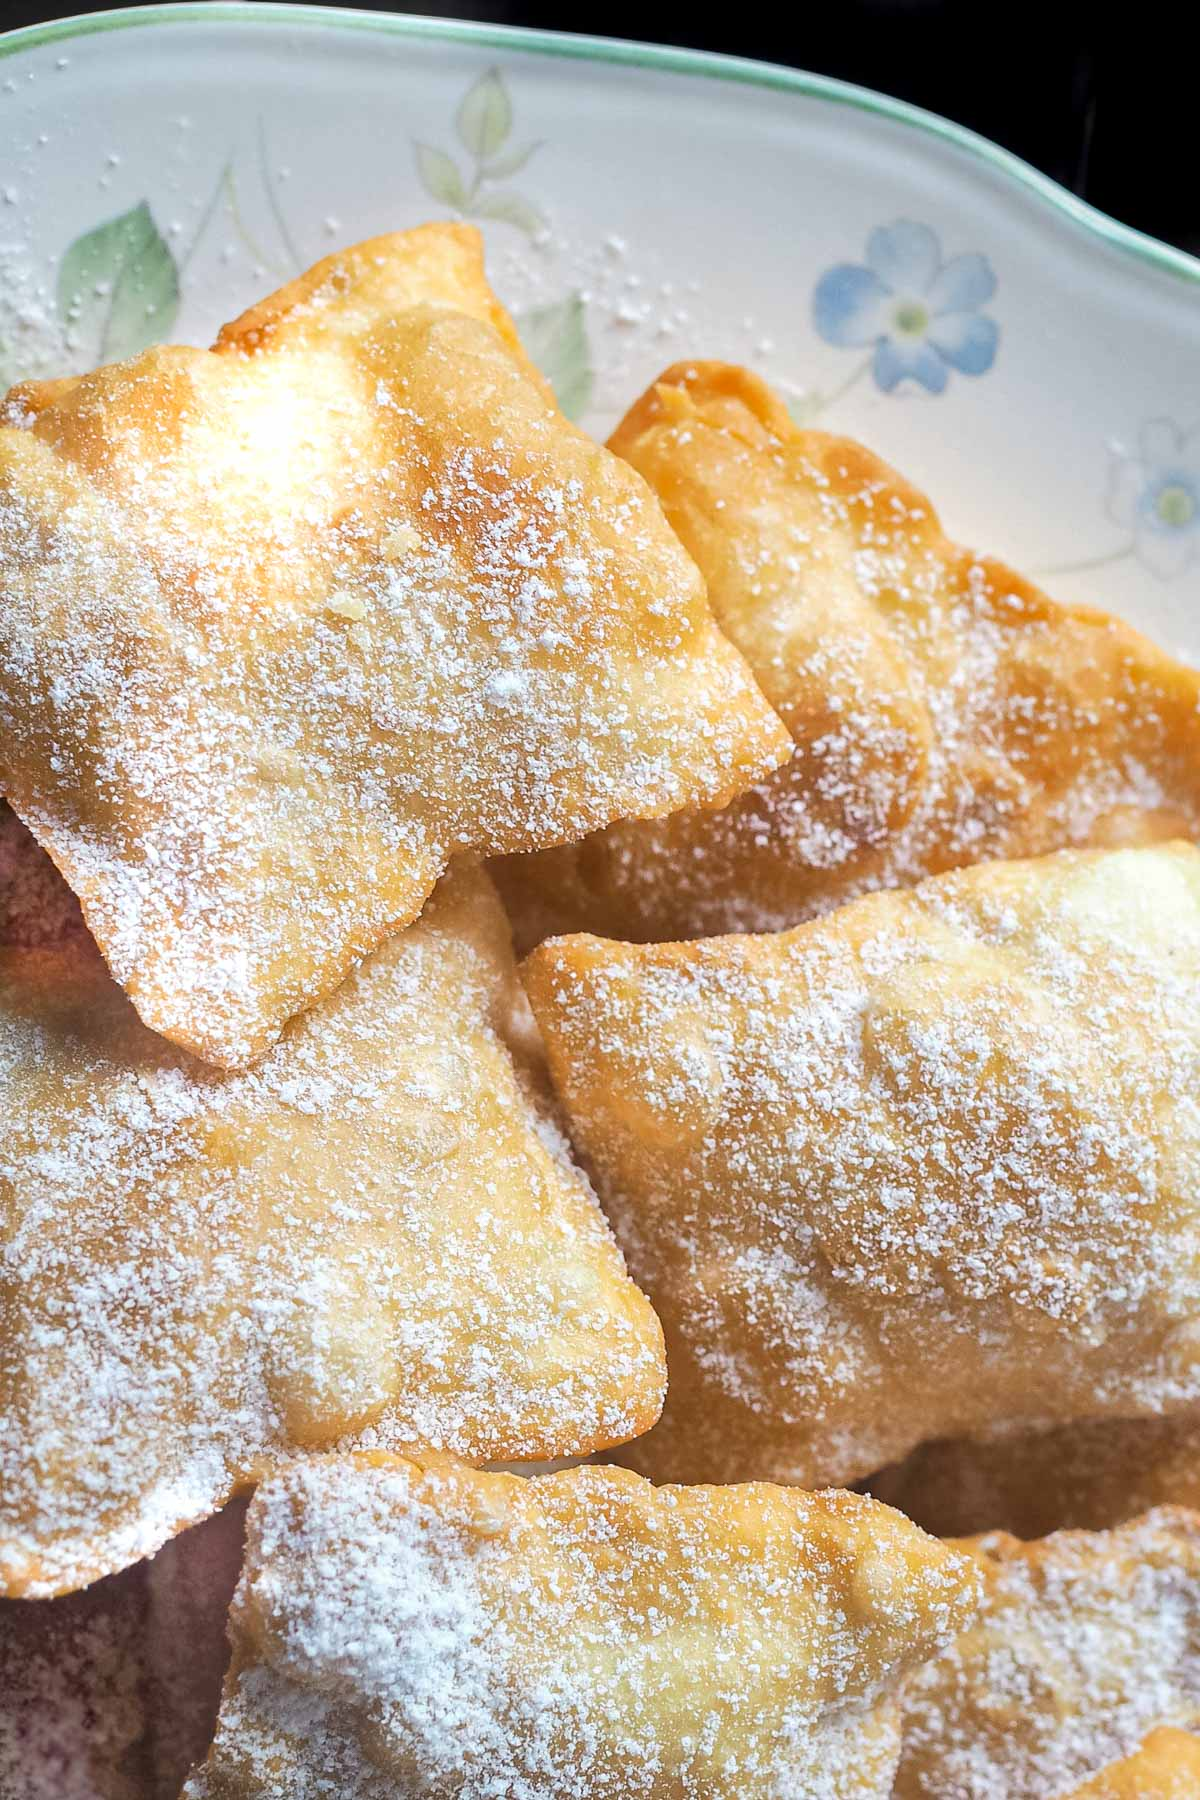 Fried pastry dough dredged with icing sugar